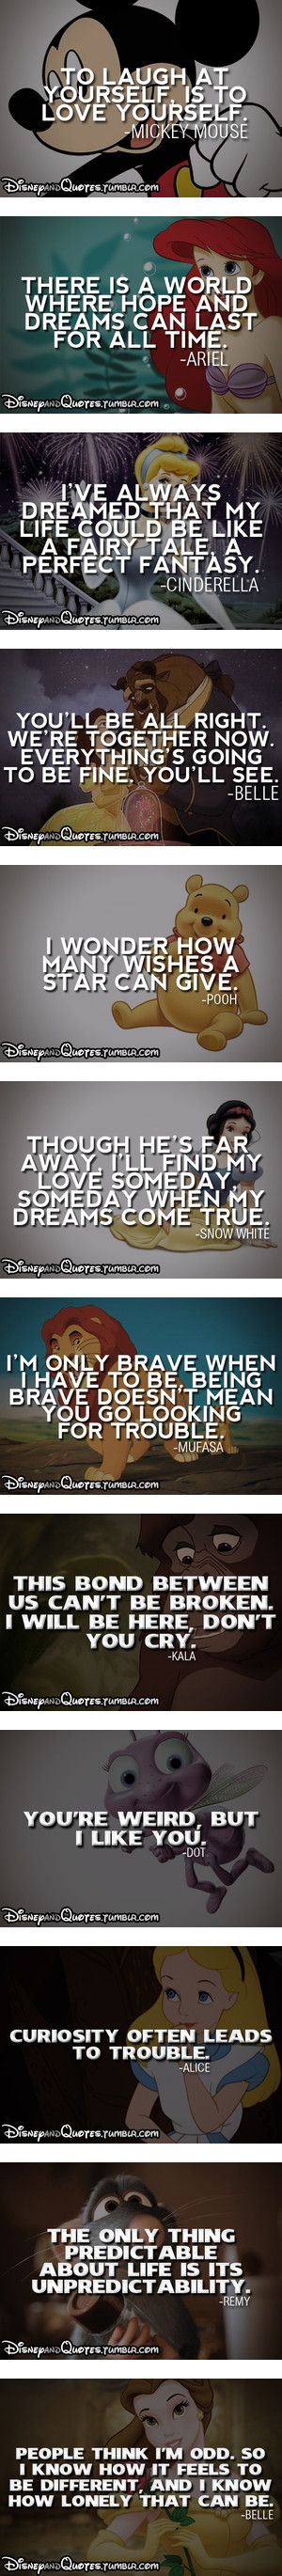 DISNEY QUOTES: Life Lessons from Classic Disney Movies ❤ >> possibly to